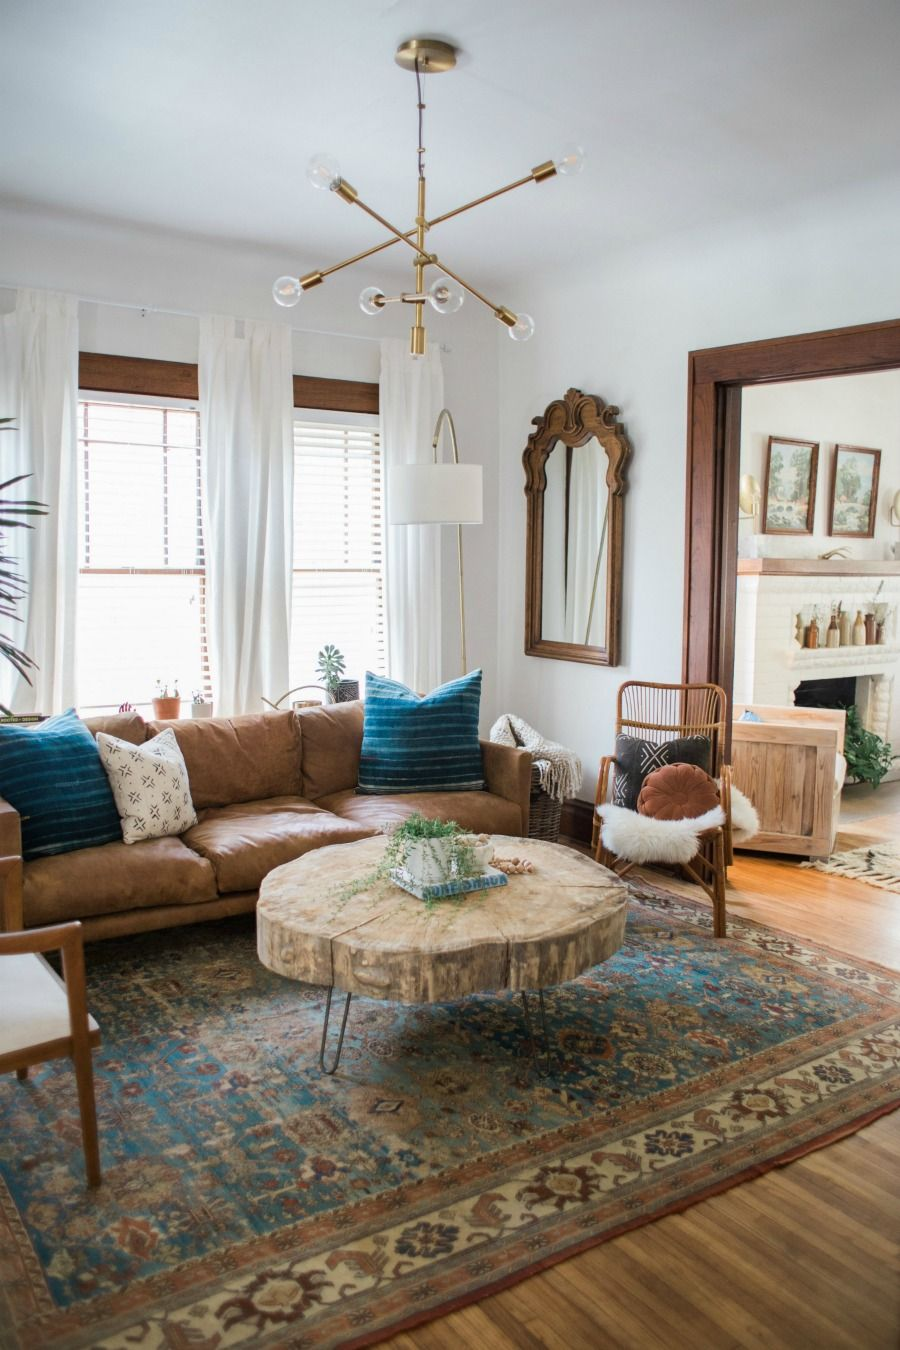 Sears Living Room Couches Traditional Sofa Sets Emily Netz: Our 1920 Kit House Before & After Tour ...